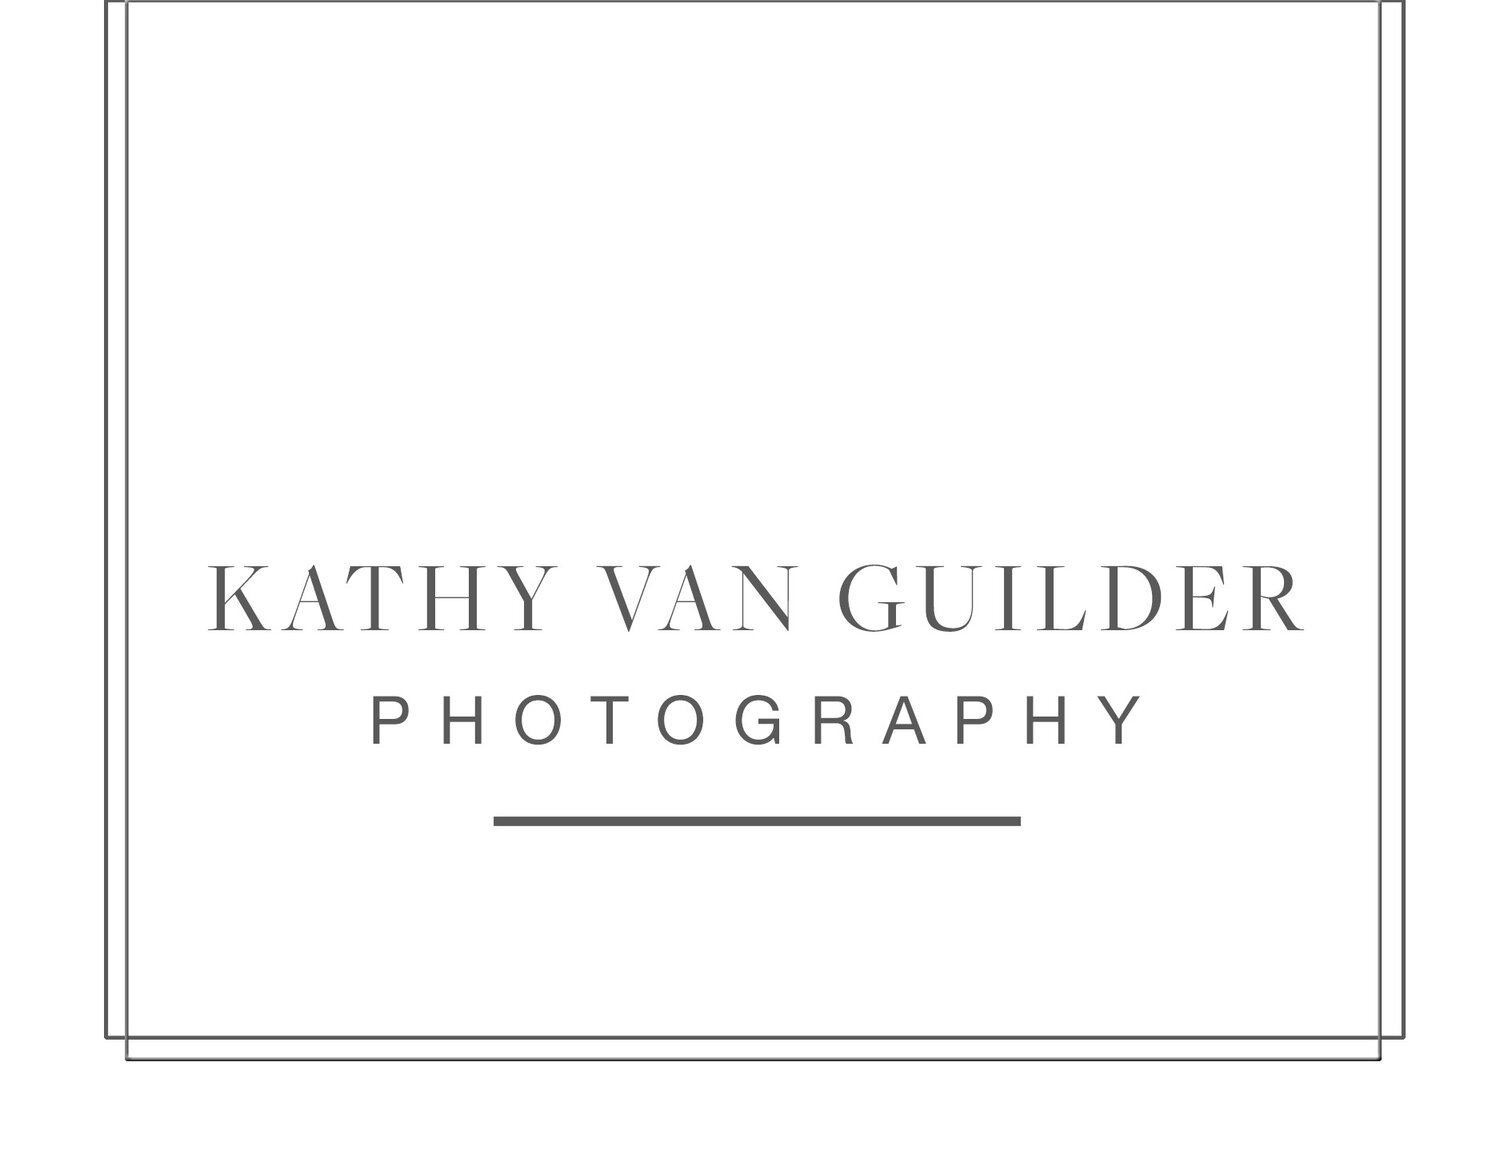 Kathy Van Guilder Photography